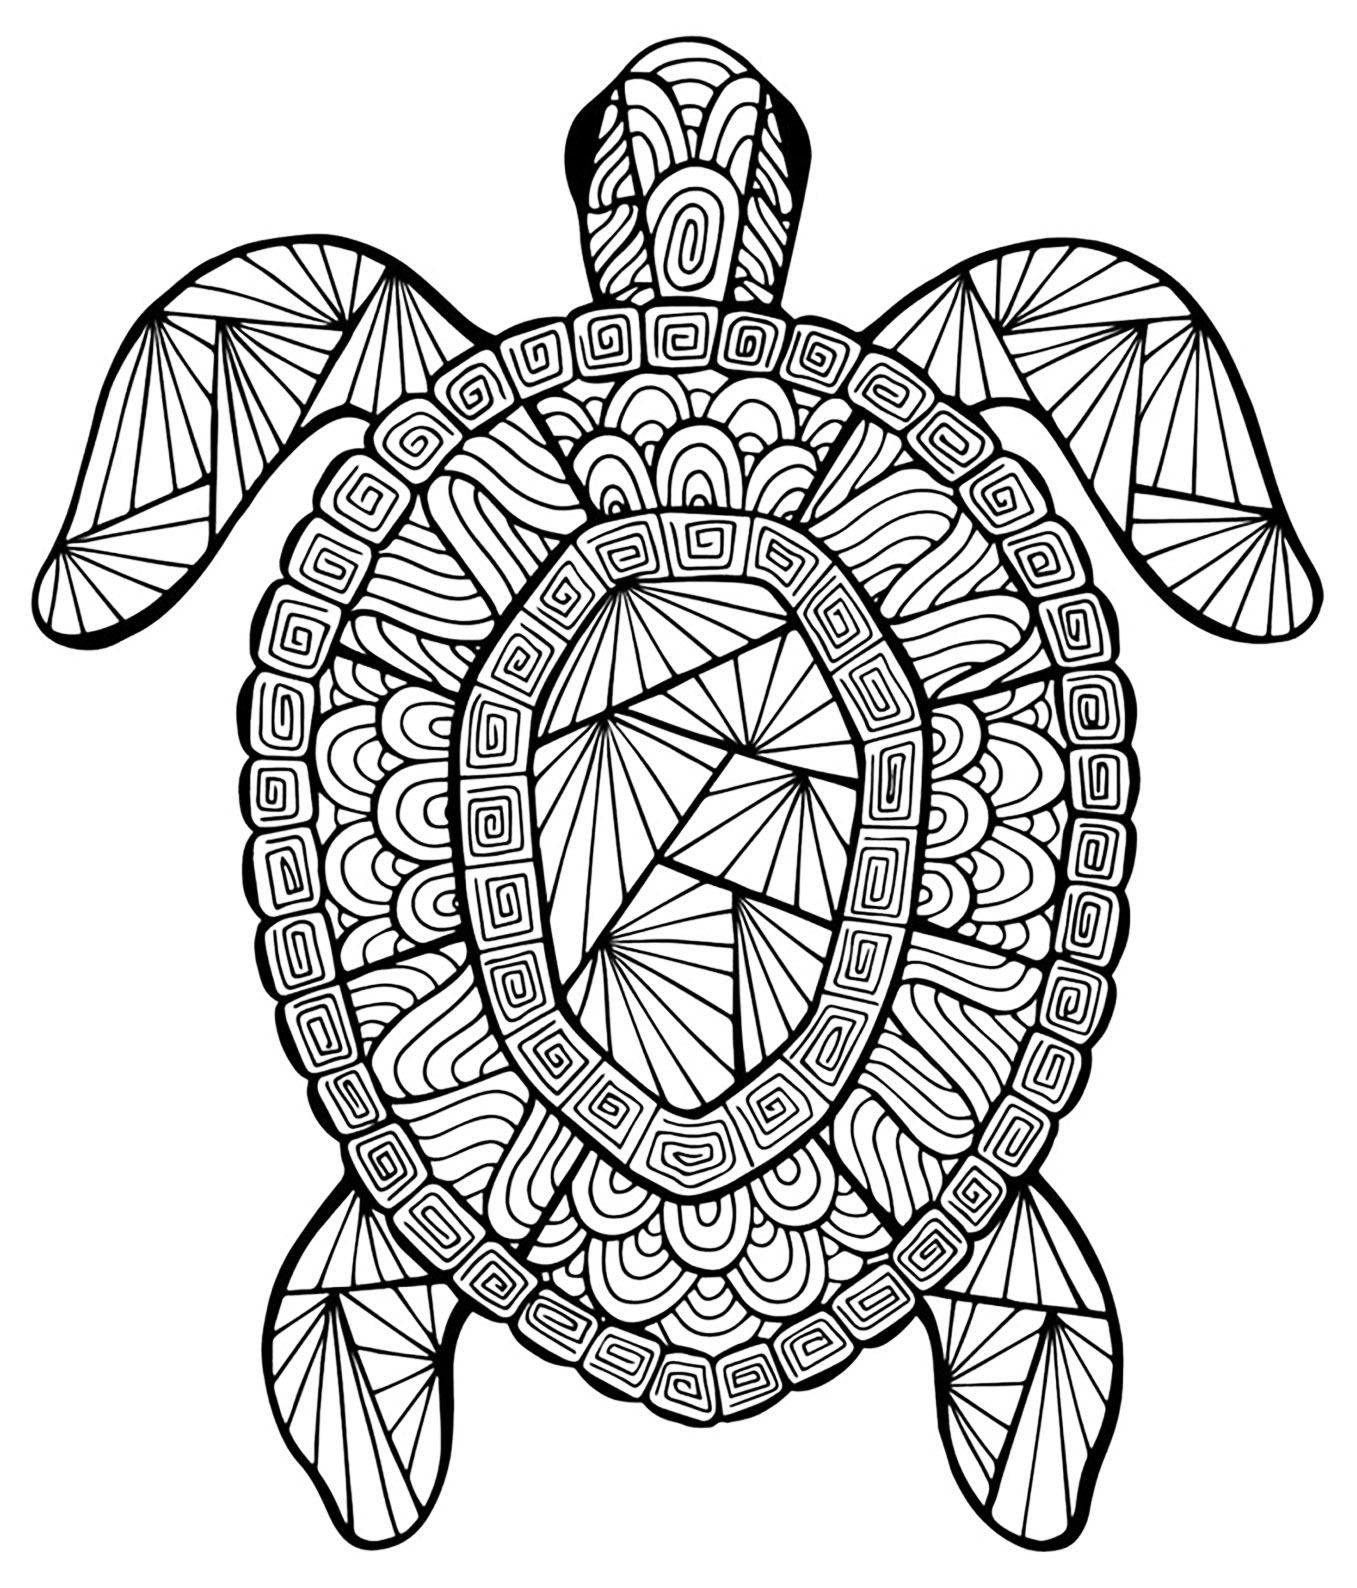 Turtle Coloring Pages Incredible Turtle Turtles Adult Coloring Pages